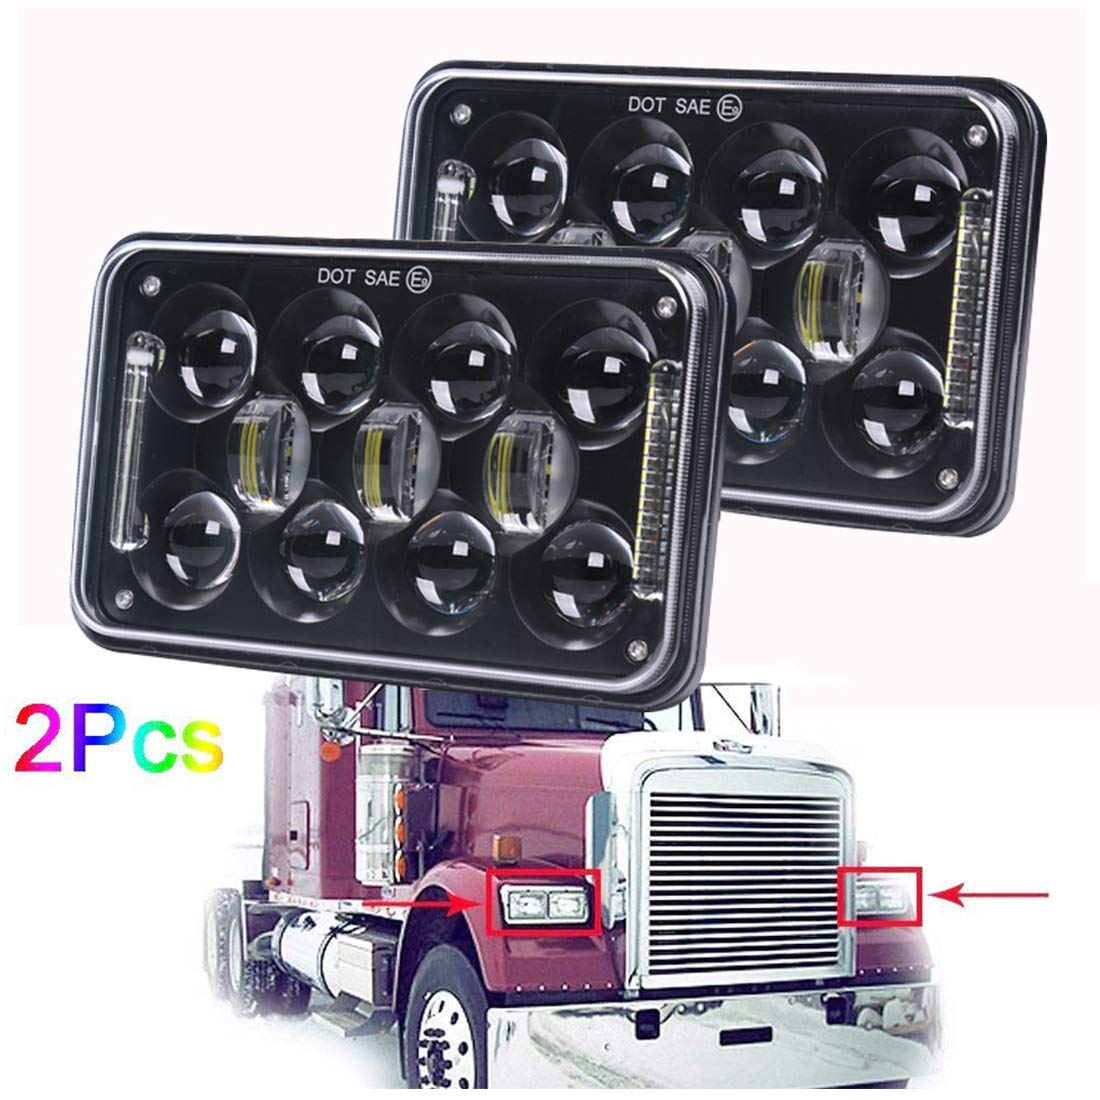 "60W Cree 4x6"" inch LED Headlights for Peterbilt 357/378 / 379 Hi/lo Beam Rectangular Headlamp Replacement for H4651/H4652/H4656/H4666/H6545-2Pcs COWONE"